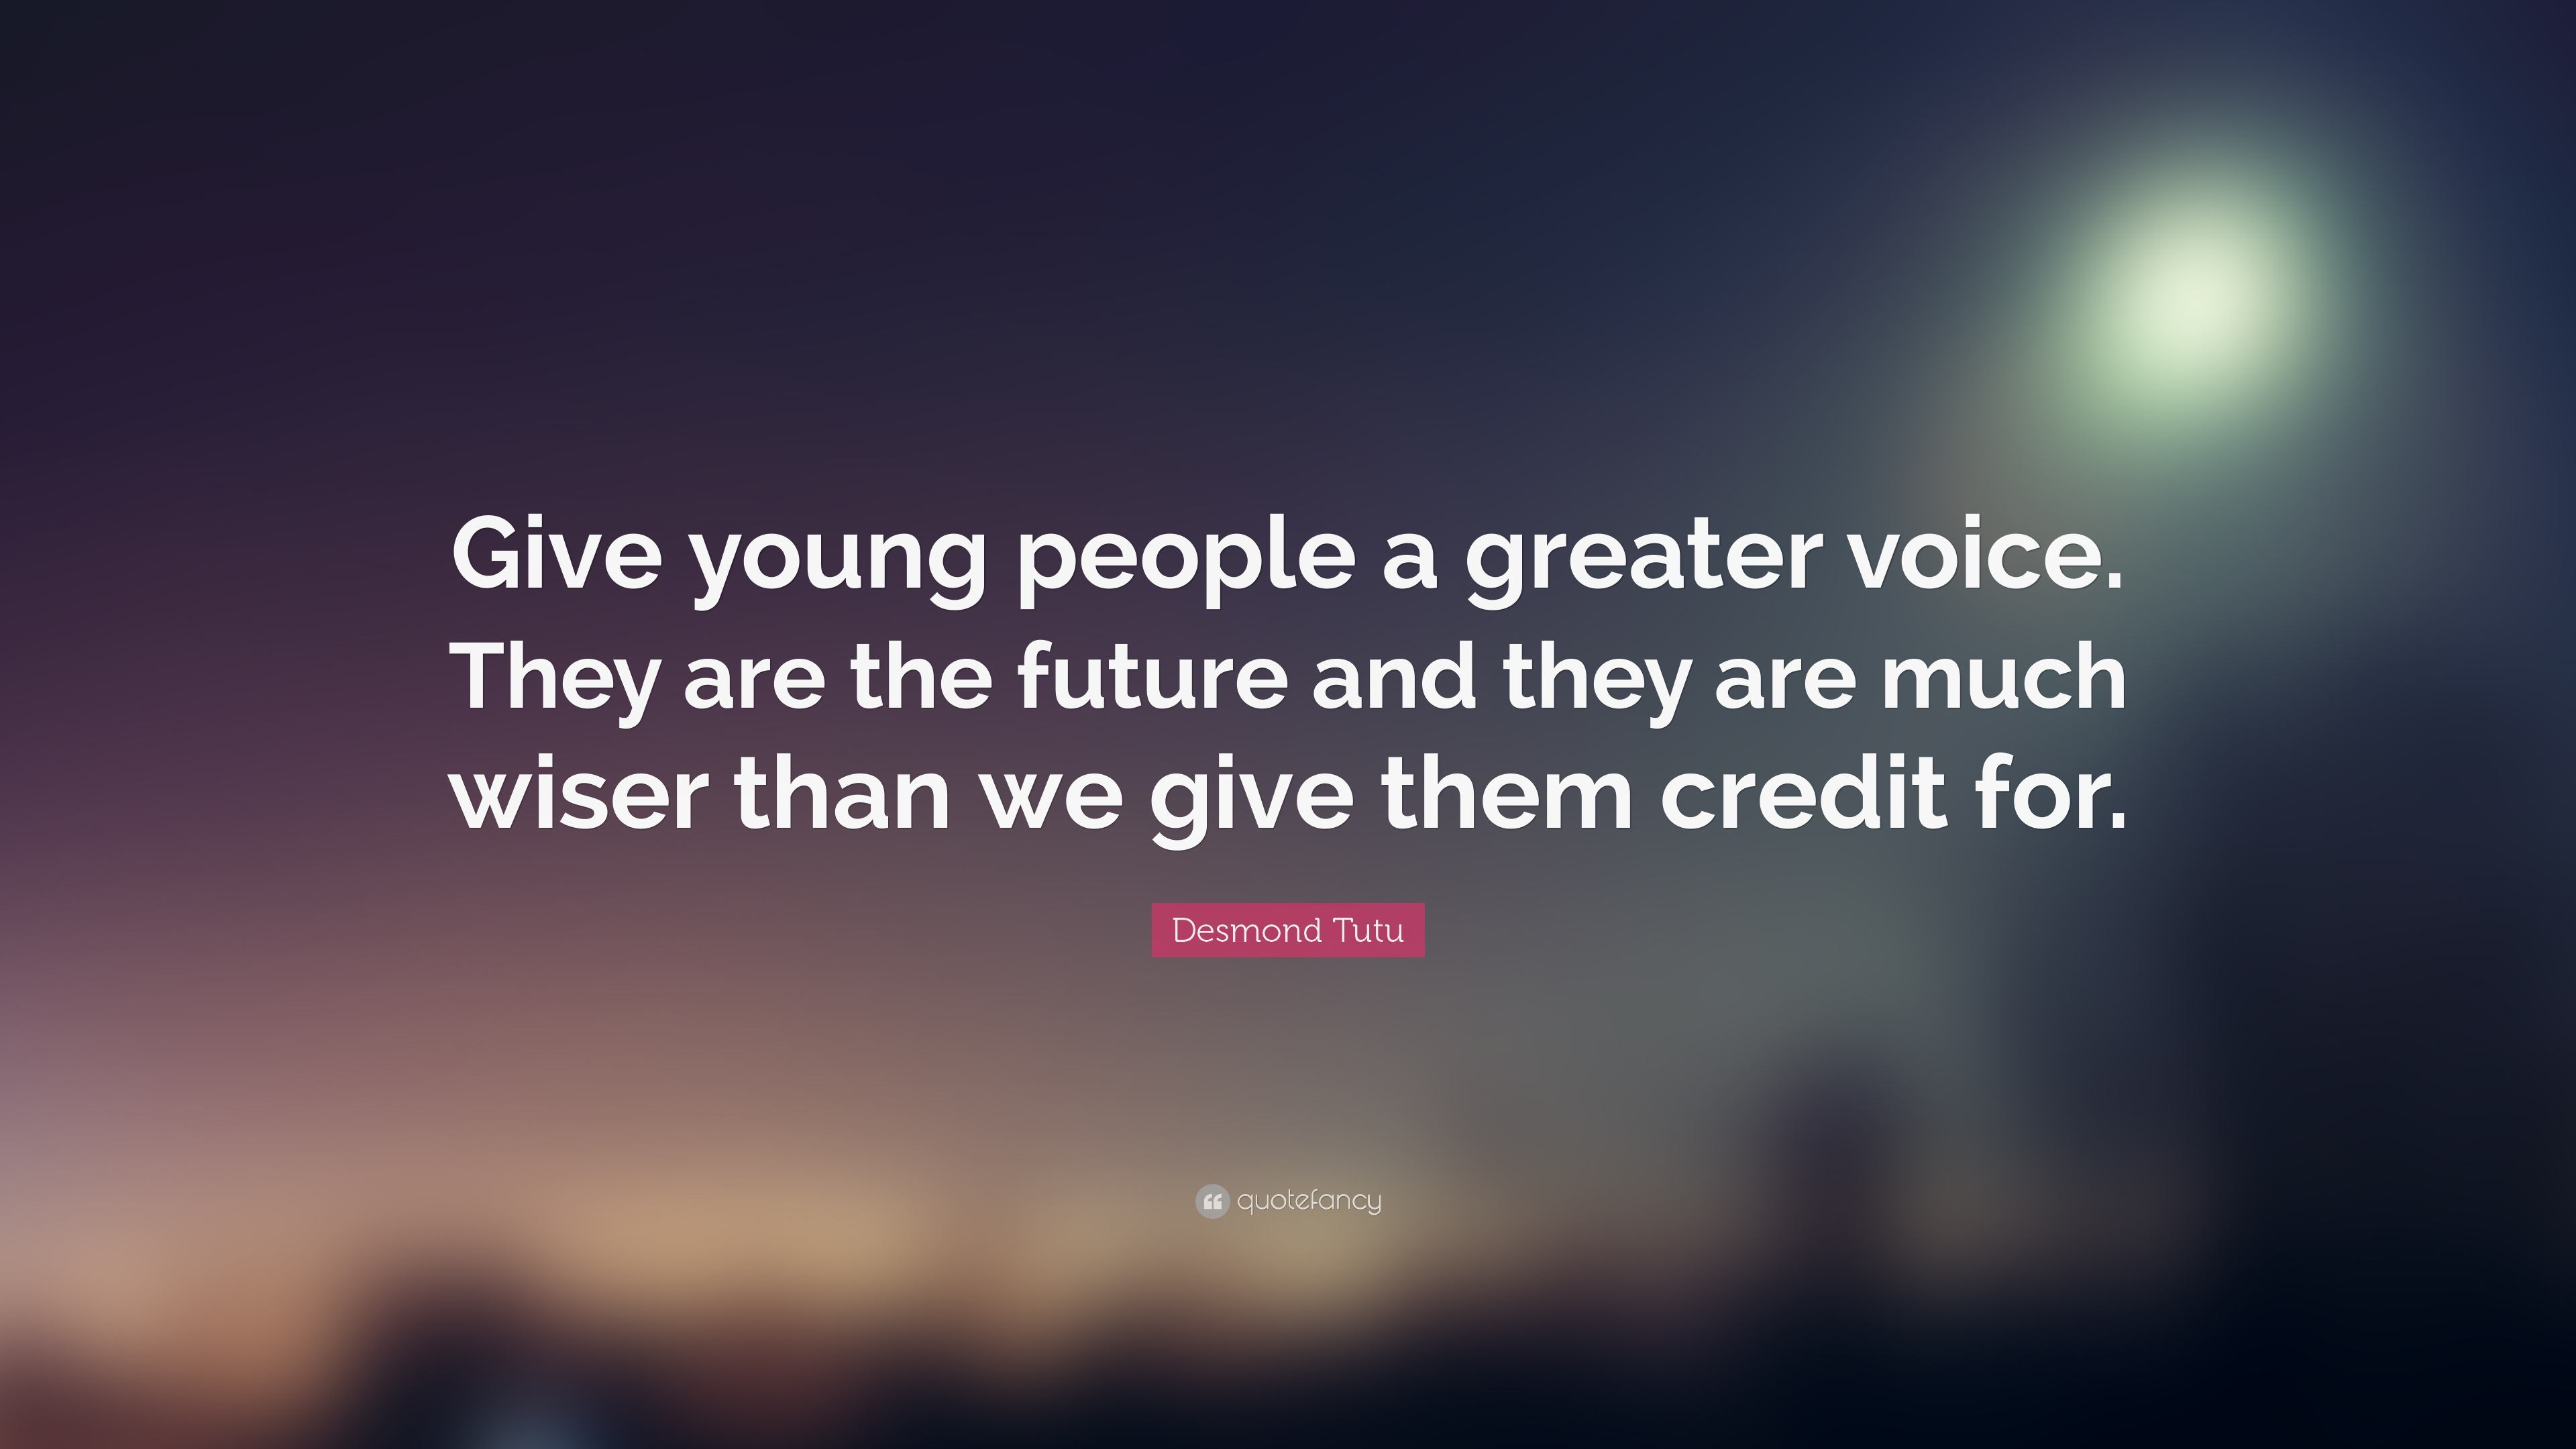 Desmond Tutu Quote Give Young People A Greater Voice They Are The